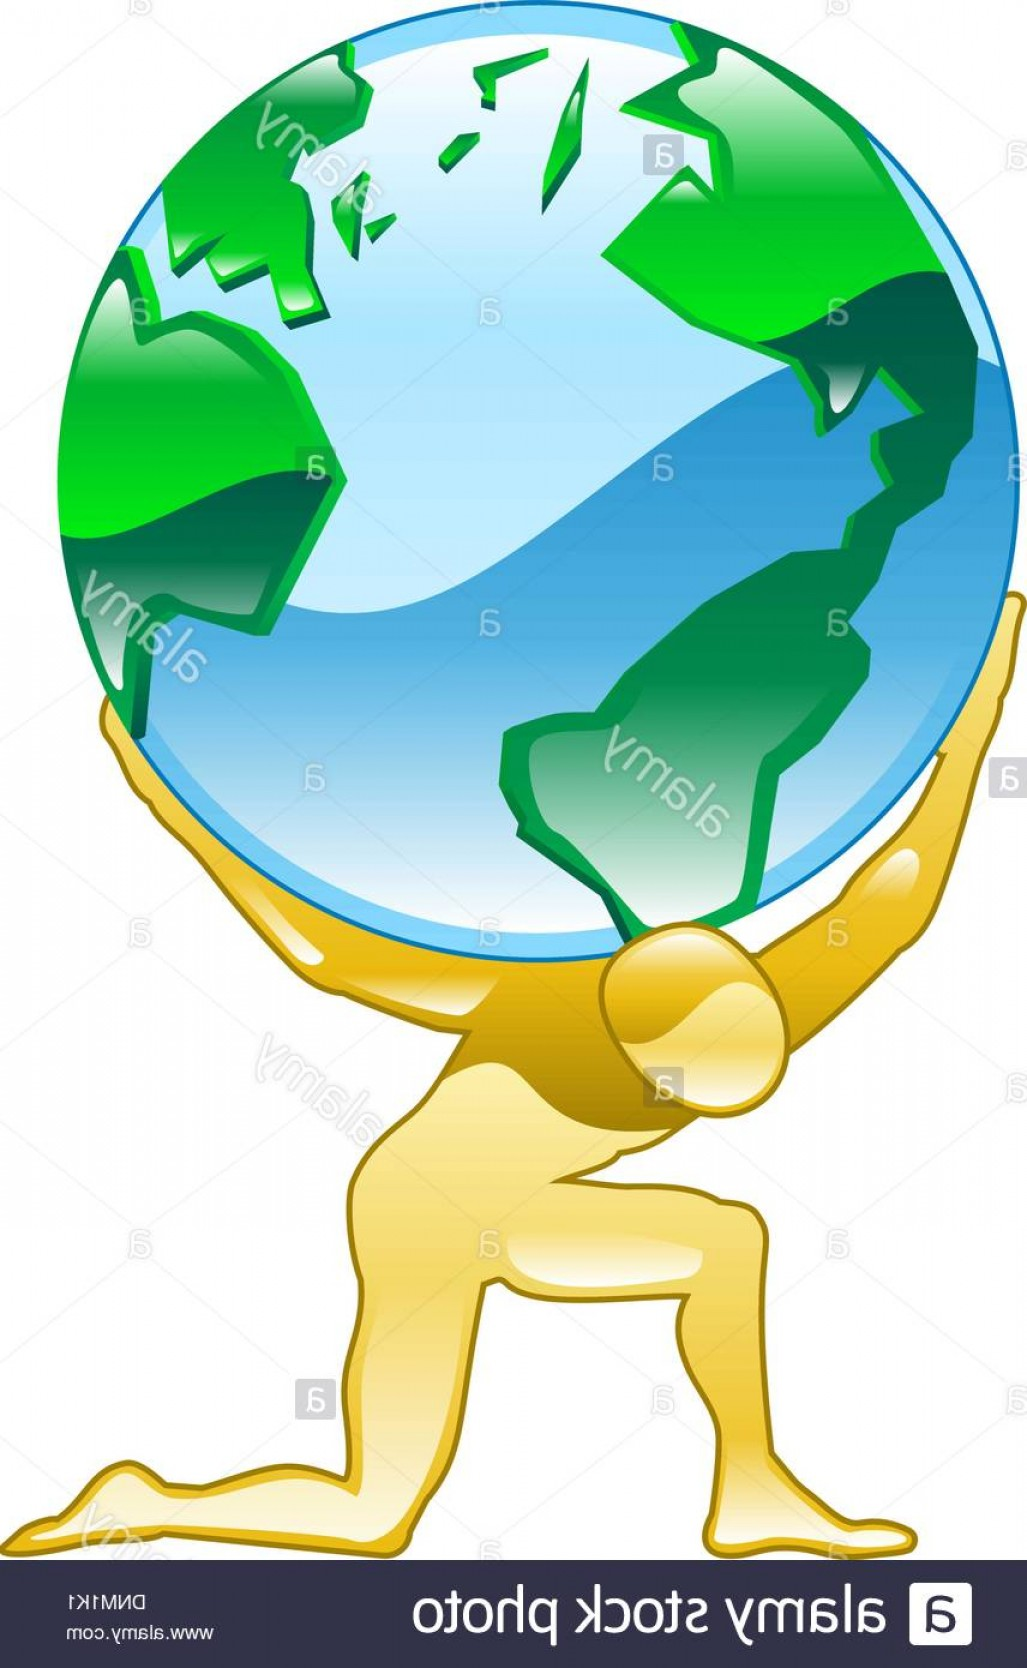 Vector Person Holding: Illustration Of A Person Holding World Globe Of The Earth Image